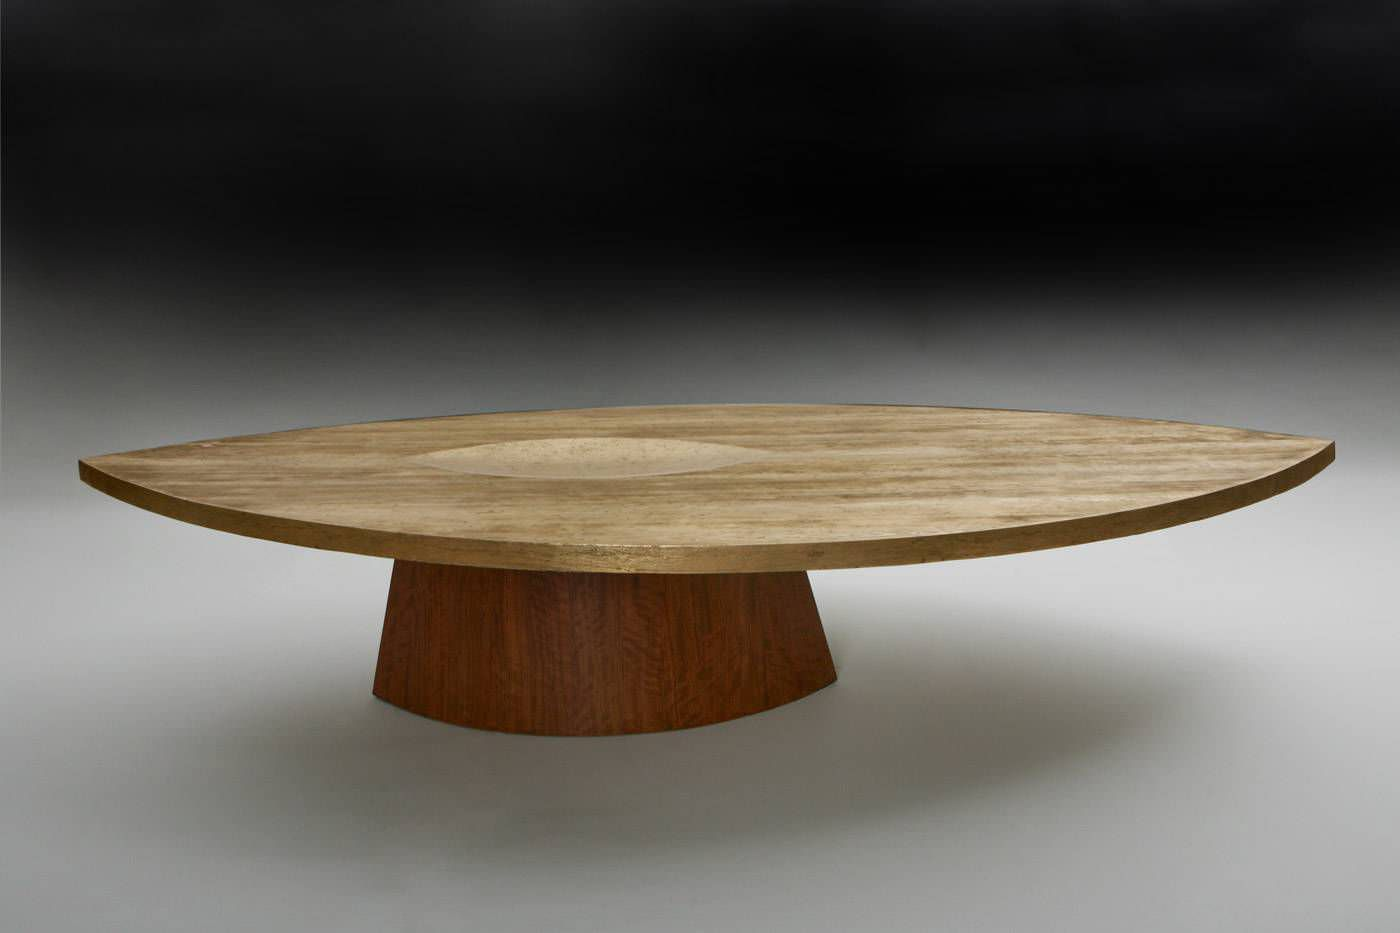 Table basse ronde en bois massif id es de d coration for Table ronde bois massif